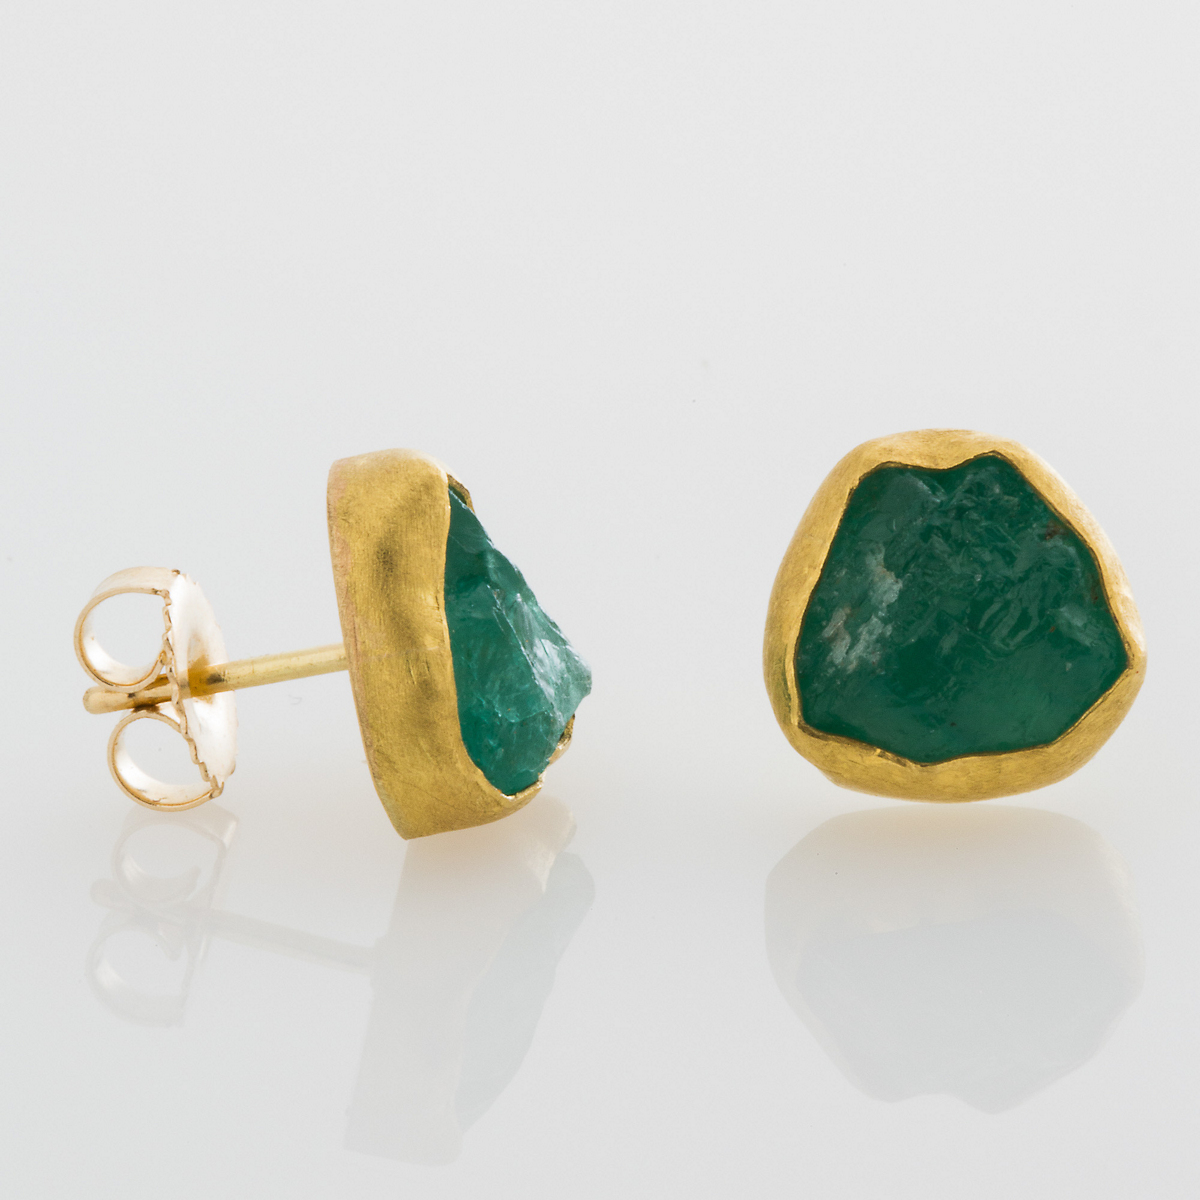 Petra Class Rough Cut Emerald Earrings